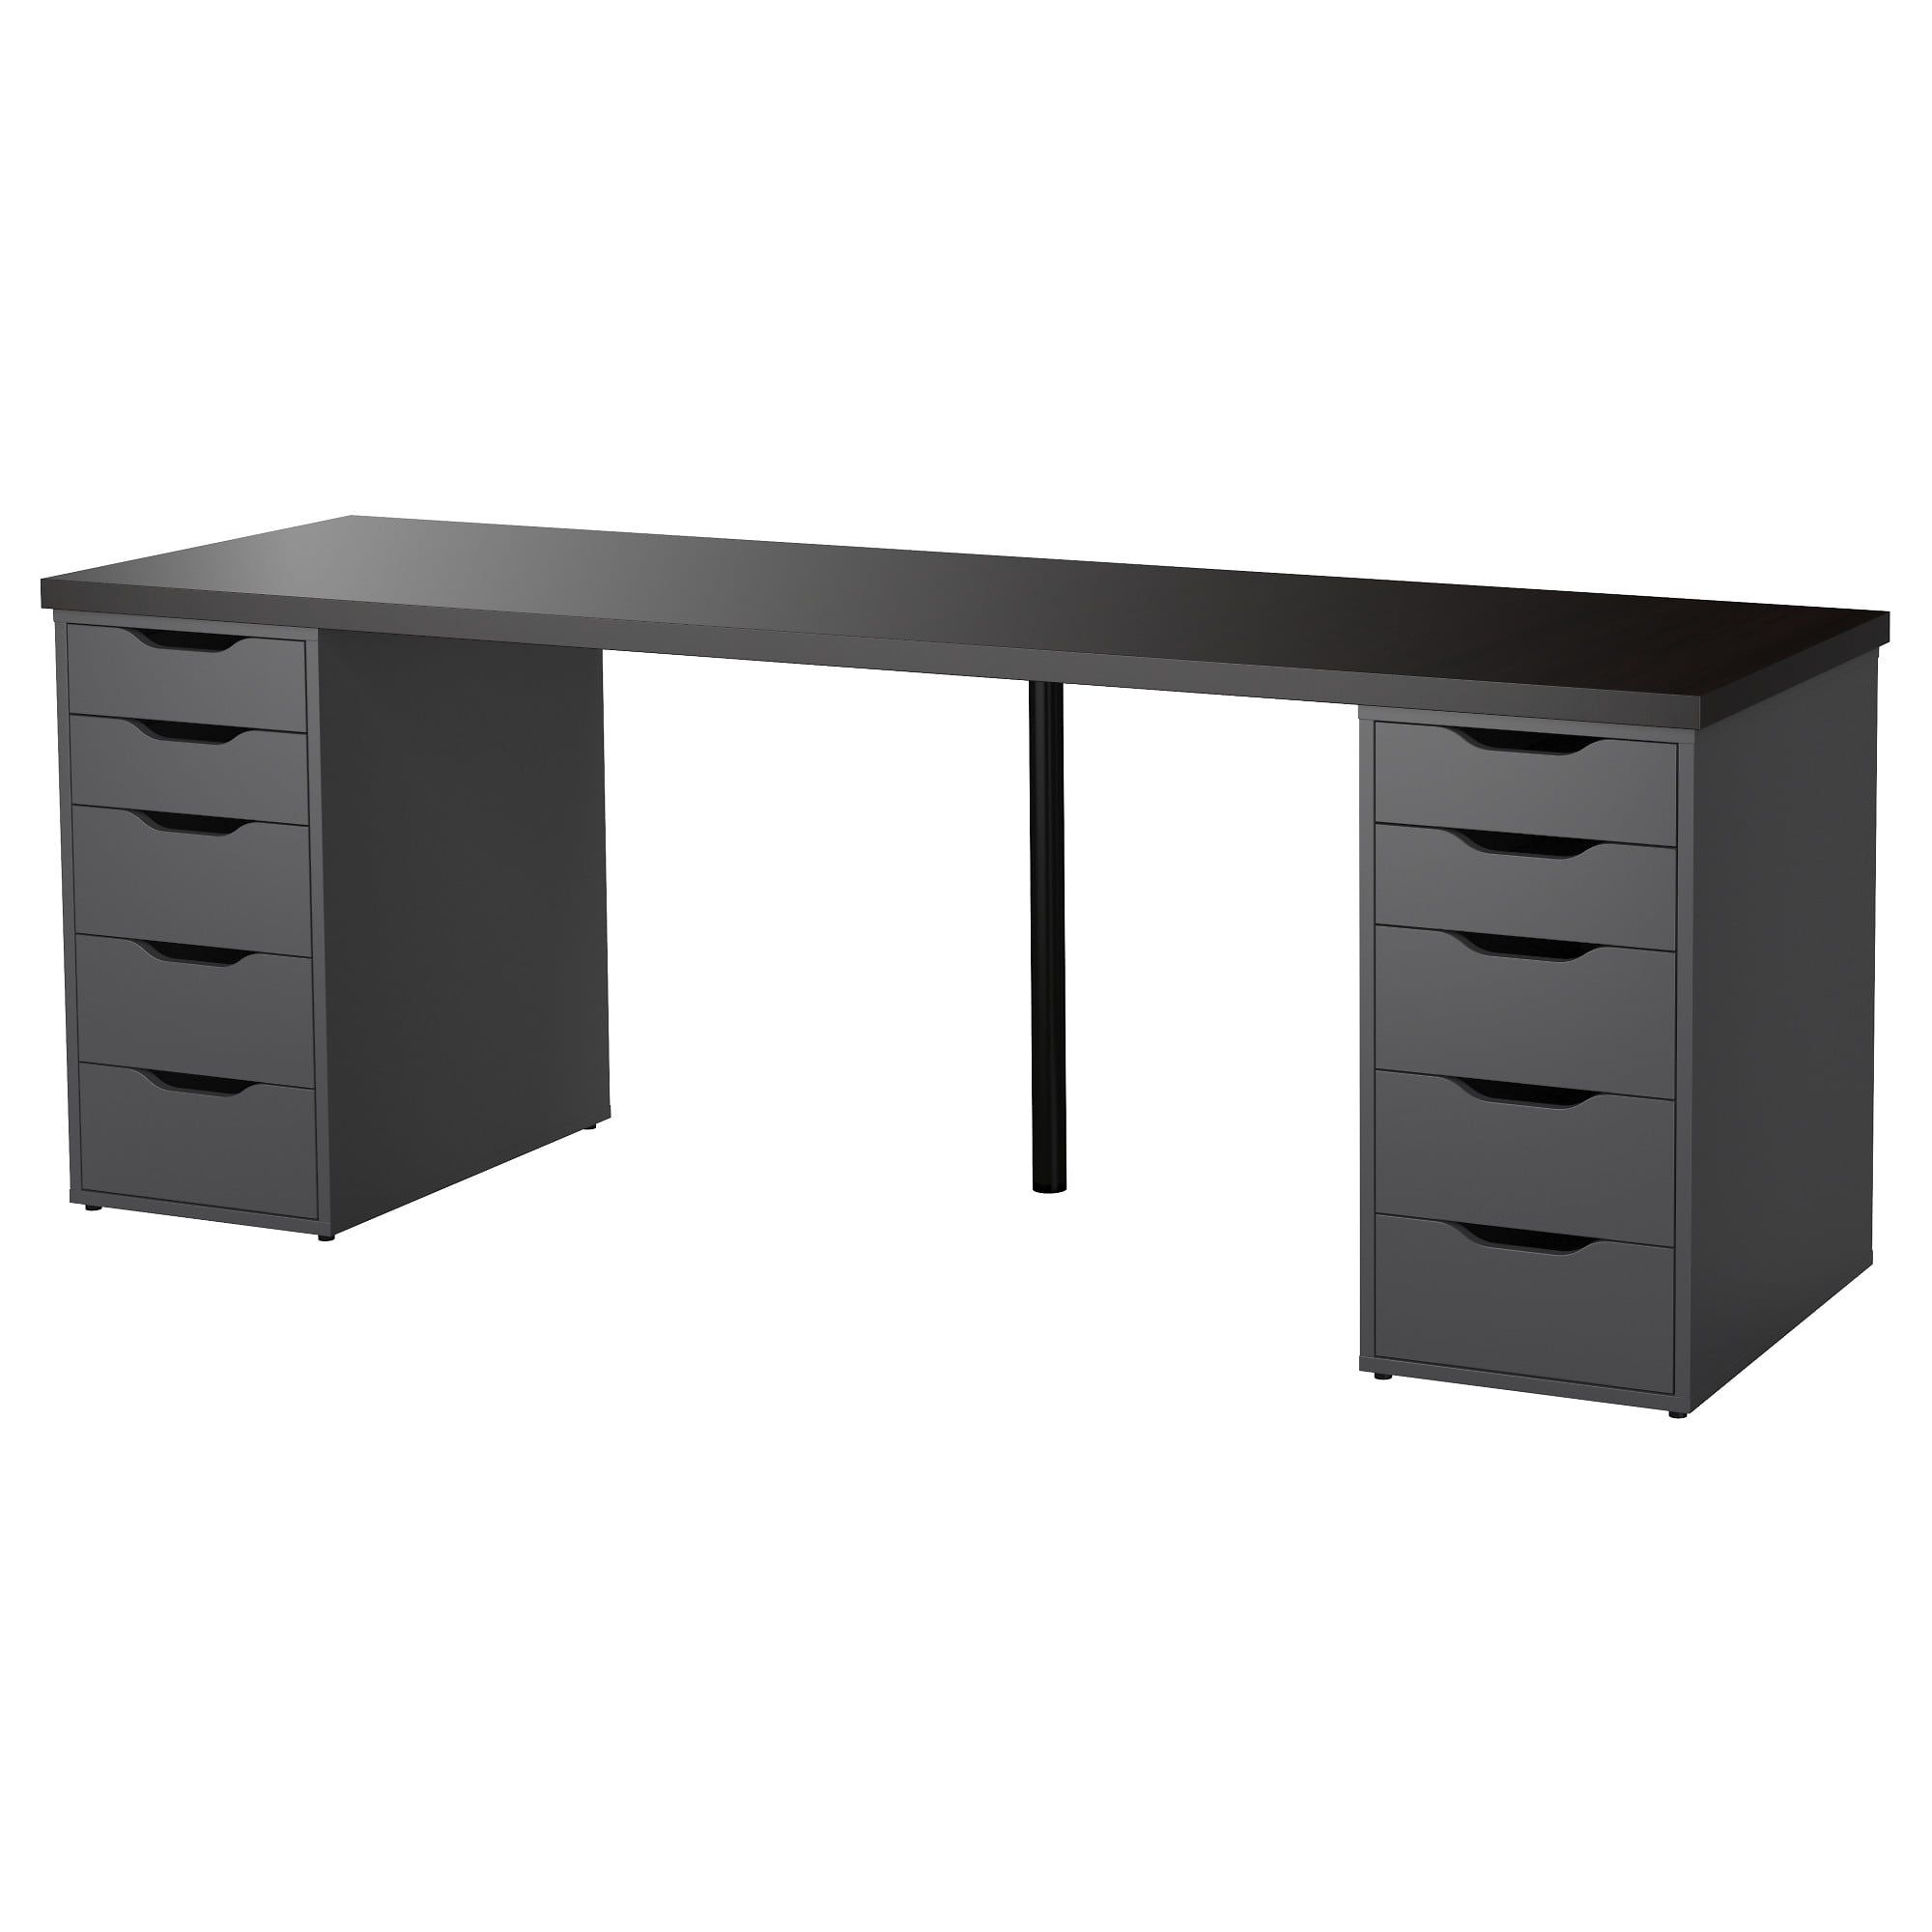 Linnmon Alex Table Black Brown Gray 78 3 4x23 5 8 Ikea In 2020 White Desk Office Ikea White Desk Ikea Office Desk